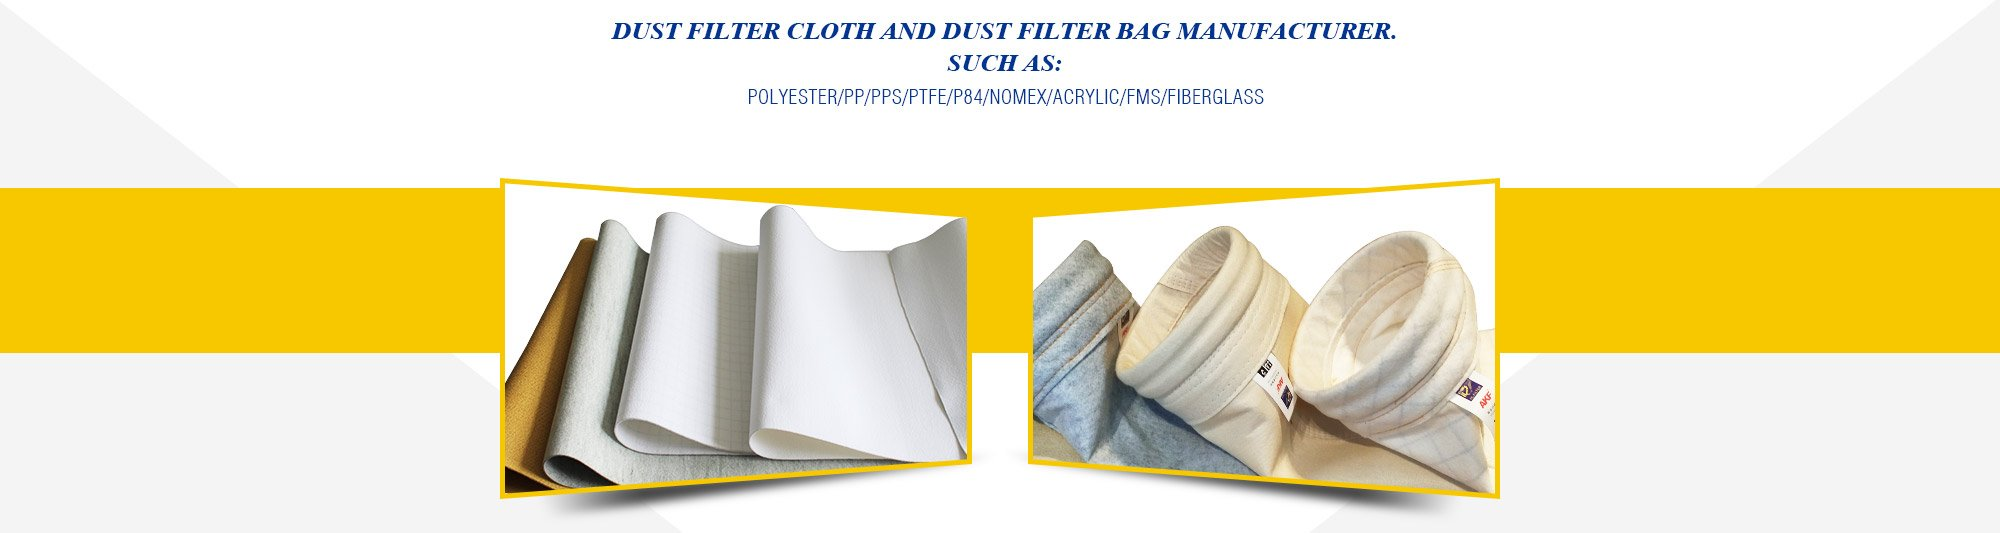 dust filter cloth and dust filter bag manufacturer.